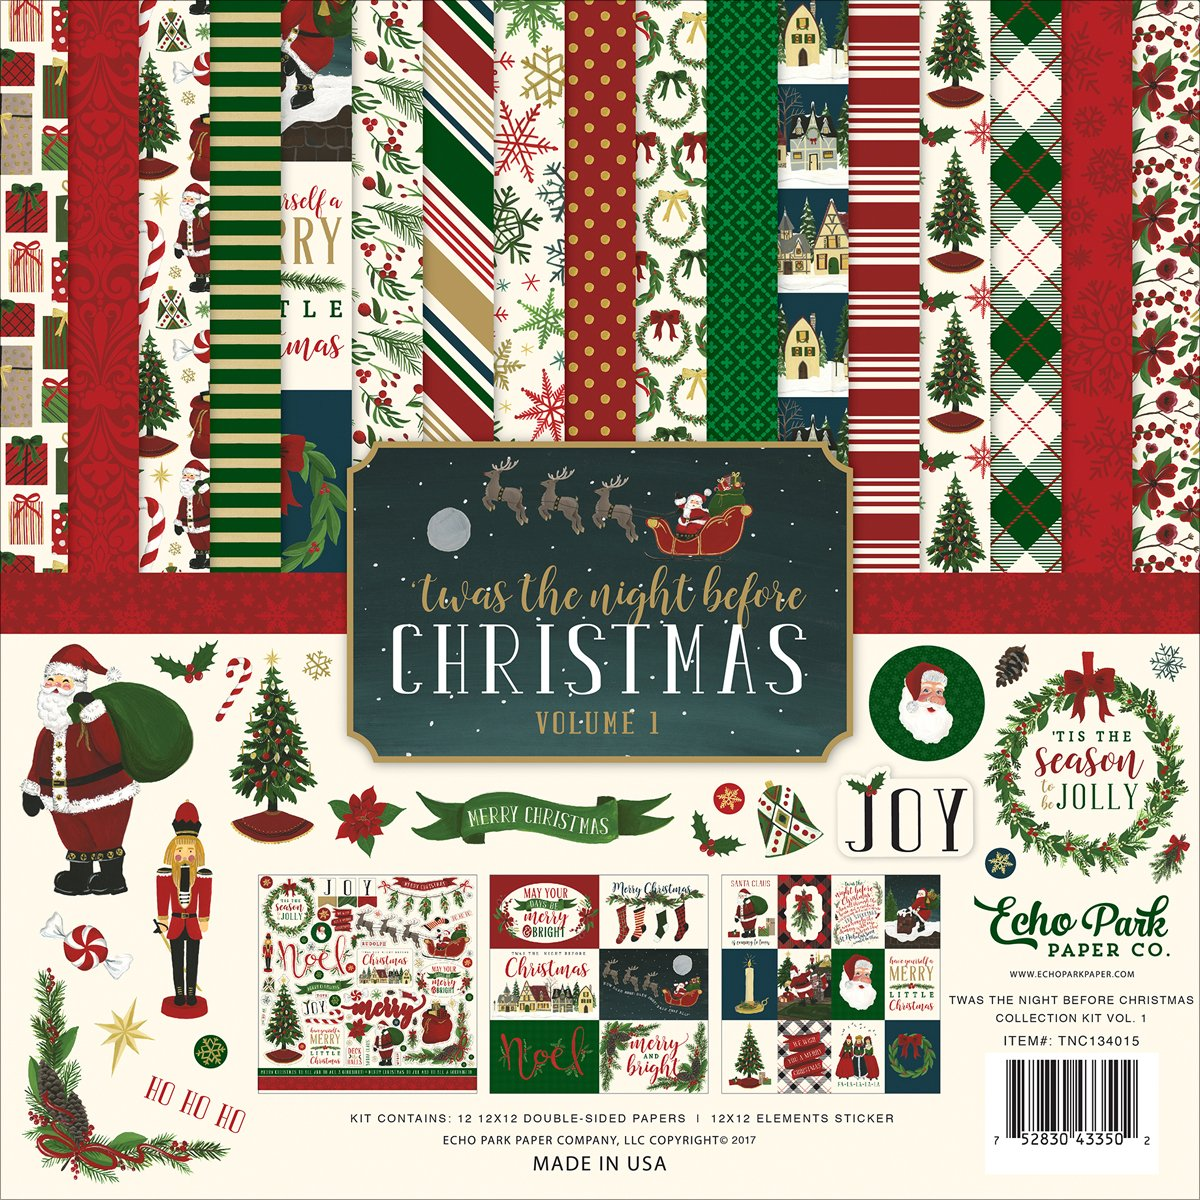 Echo Park Paper Company Night Before Christmas Collection Kit Vol. 1 1